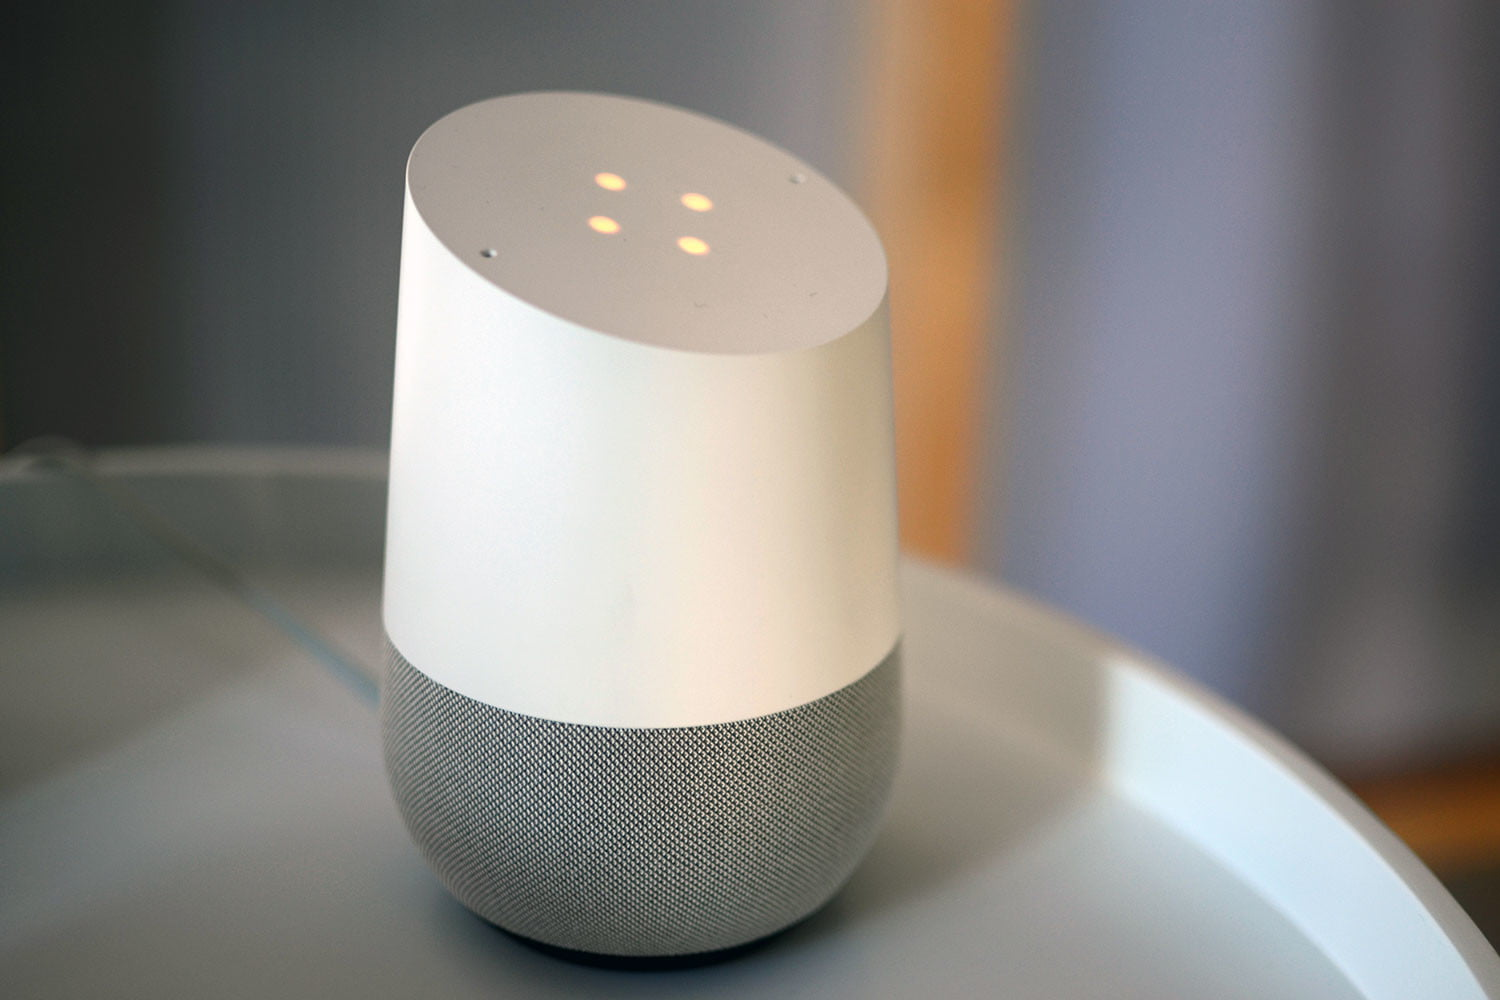 The Best Google Home-Compatible Devices for 2019 | Digital Trends